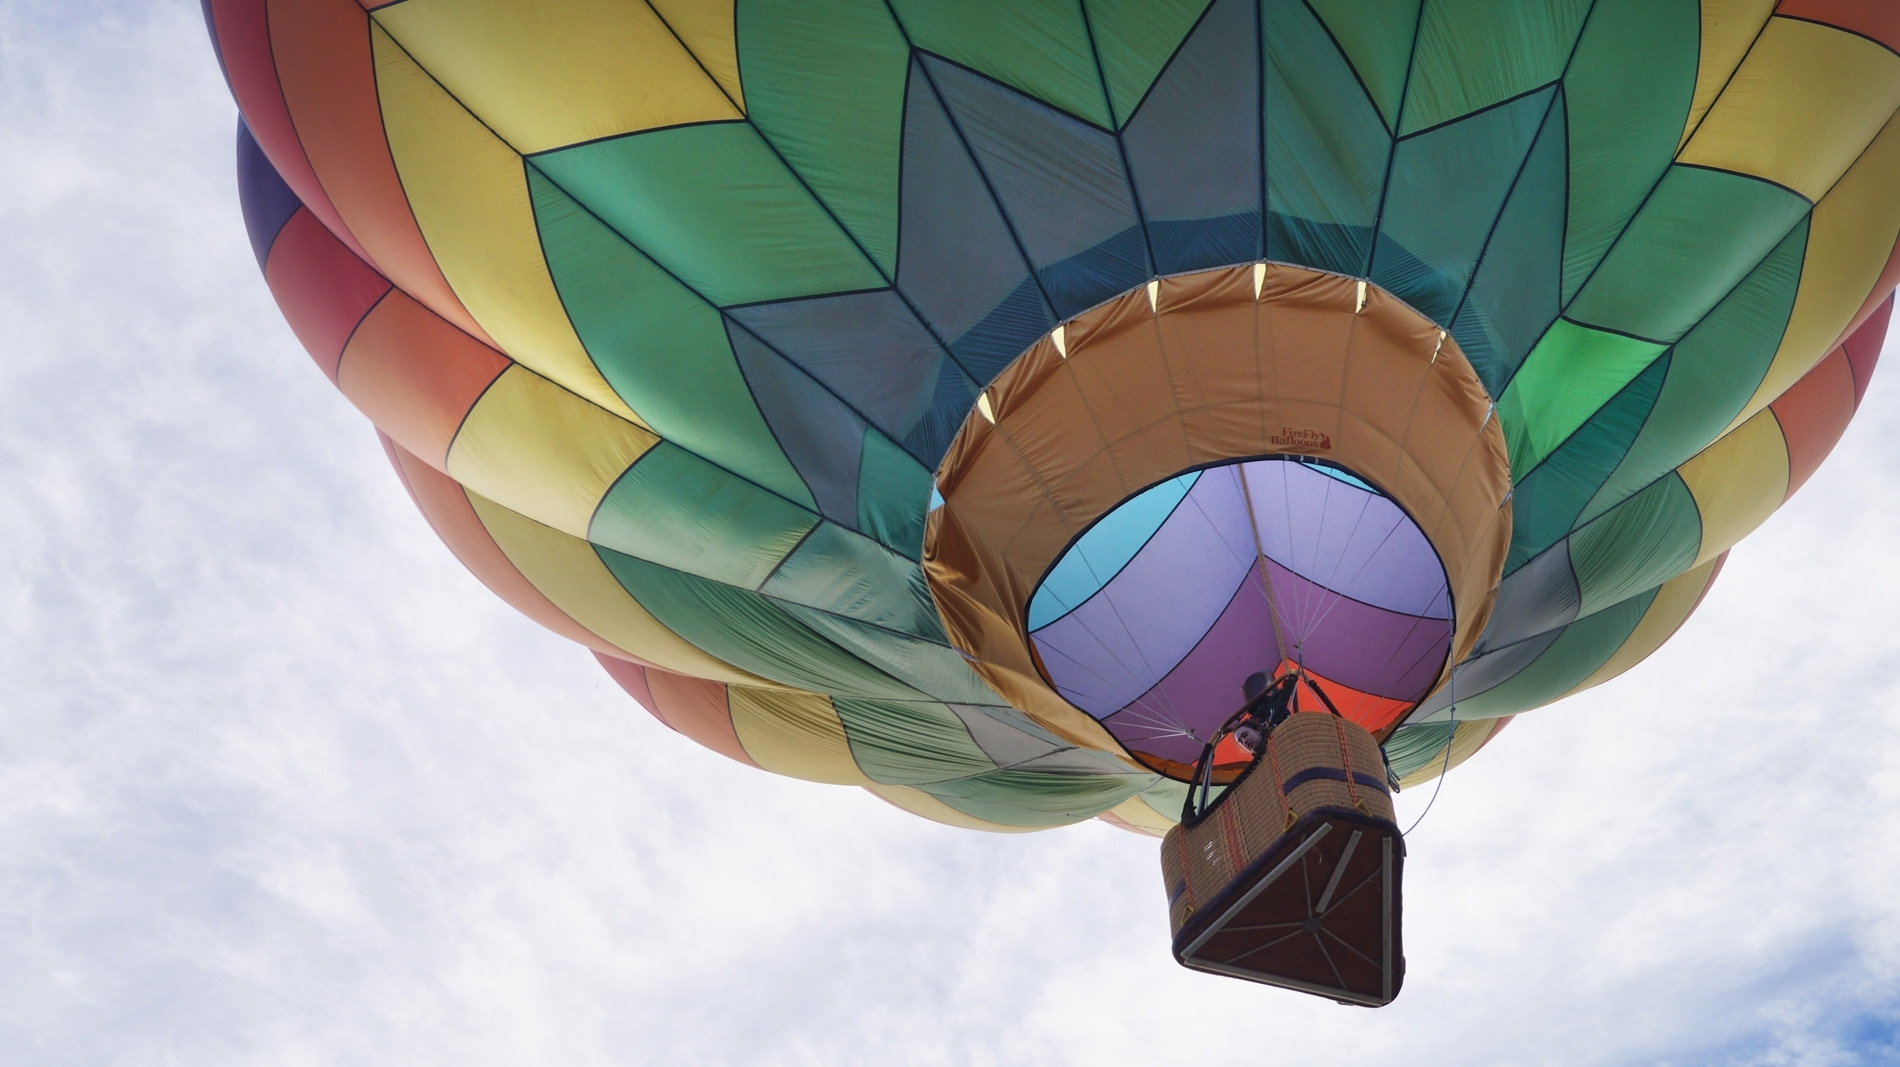 'One of the 87 Balloons from the 37th Reno Hot Air Balloon race takes off' (JB 1 Place) by Allan Petersdorf - CC